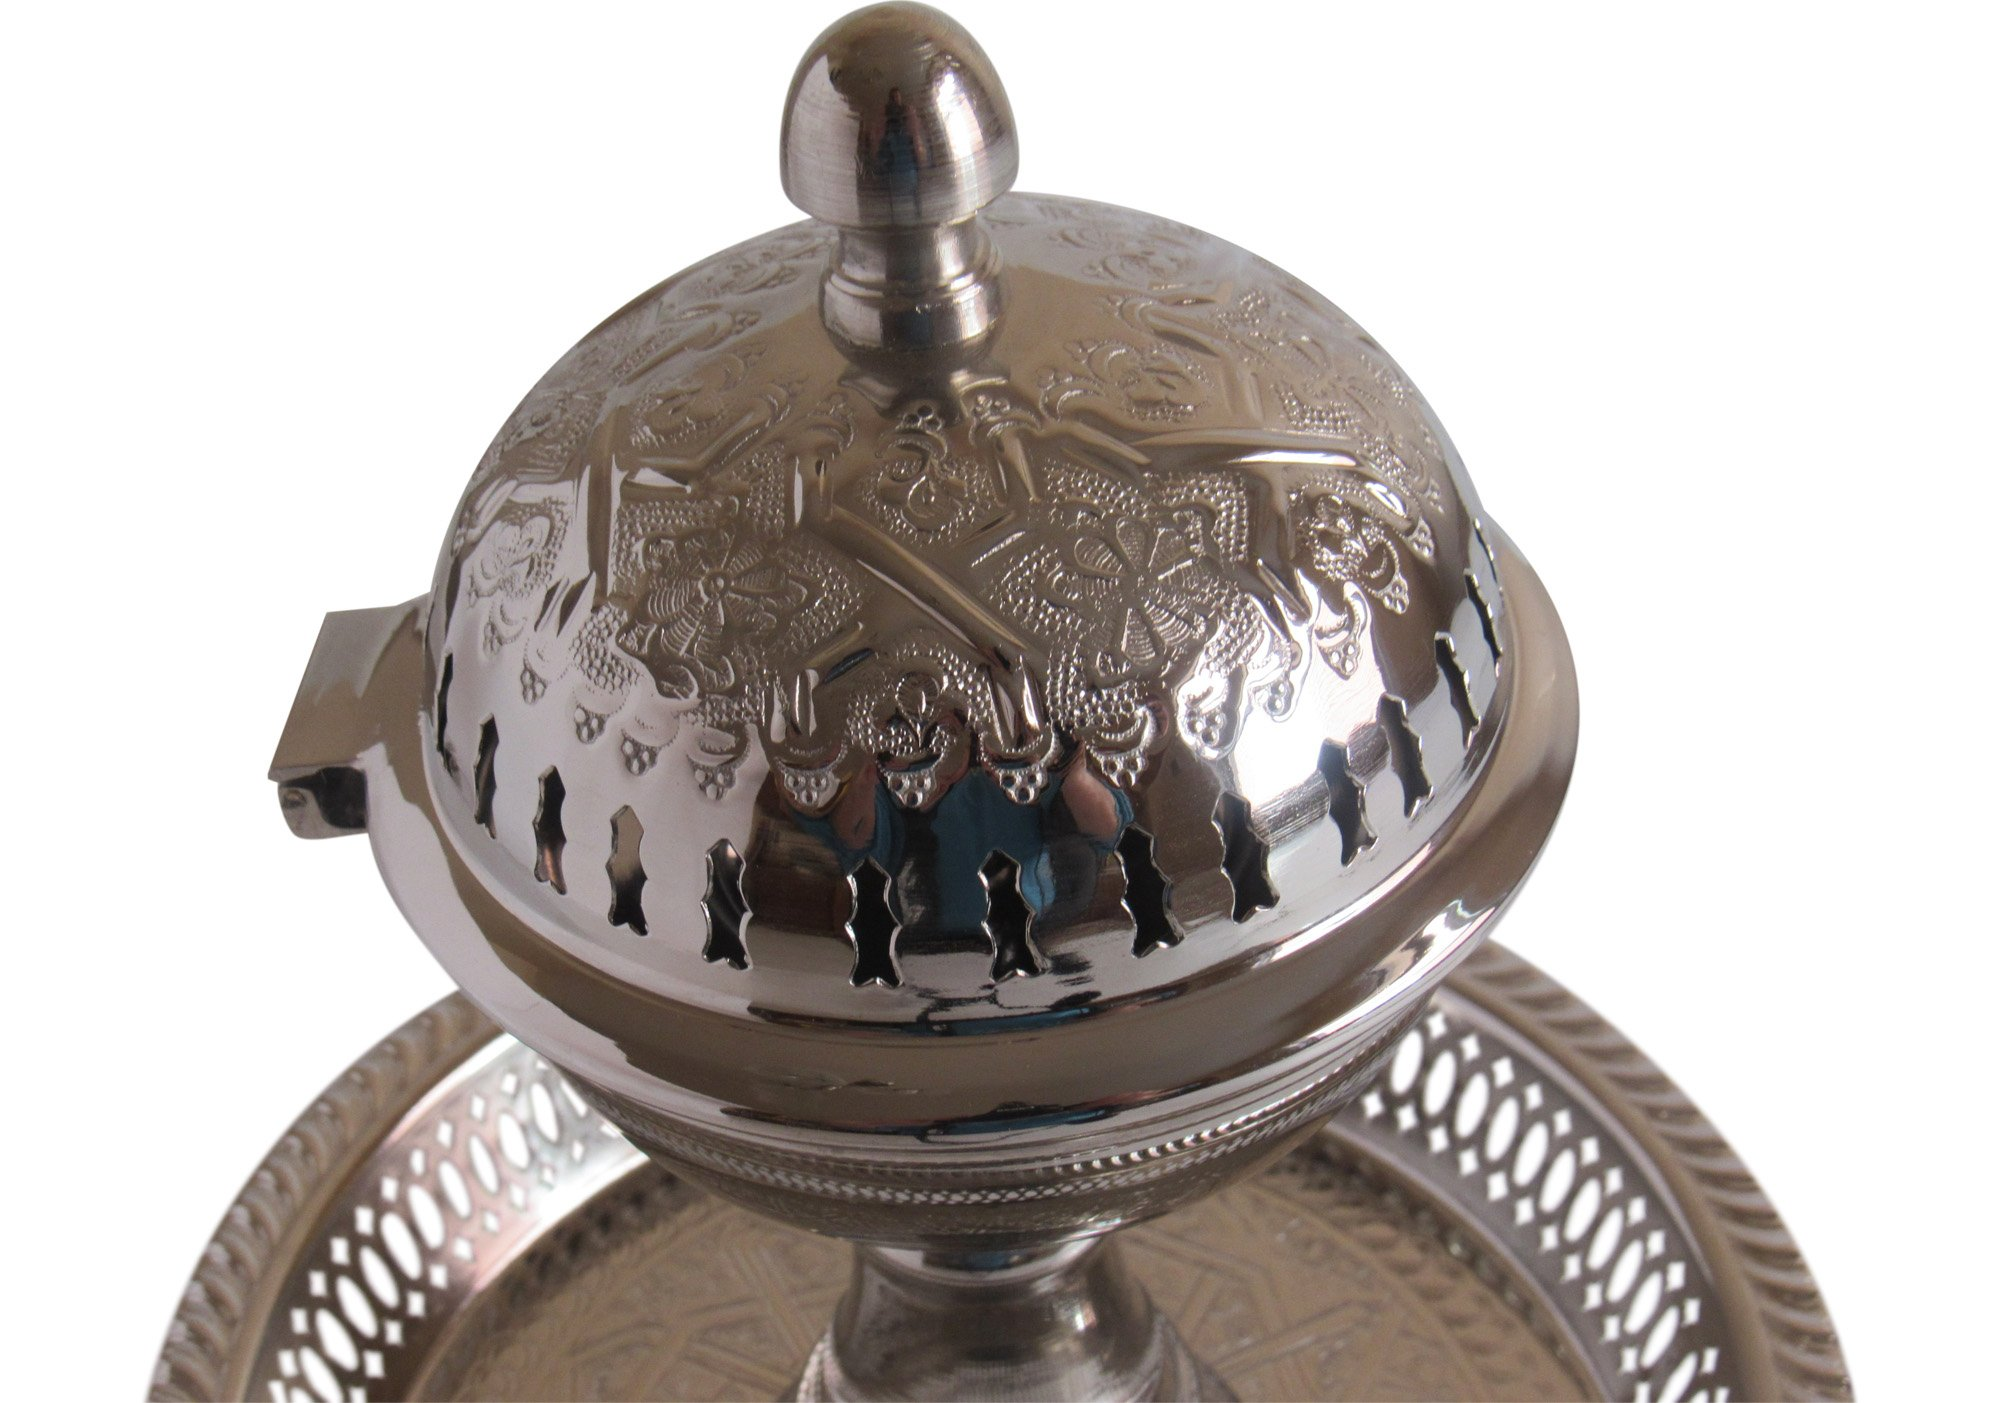 Vintage Styled Handmade Moroccan Silver Plated Engraved Incense Burner with Ash Catcher, Bring Home a Beautifully Functional Near East Tradition, 11x10'' by Handmade Moroccan Teapot (Image #3)